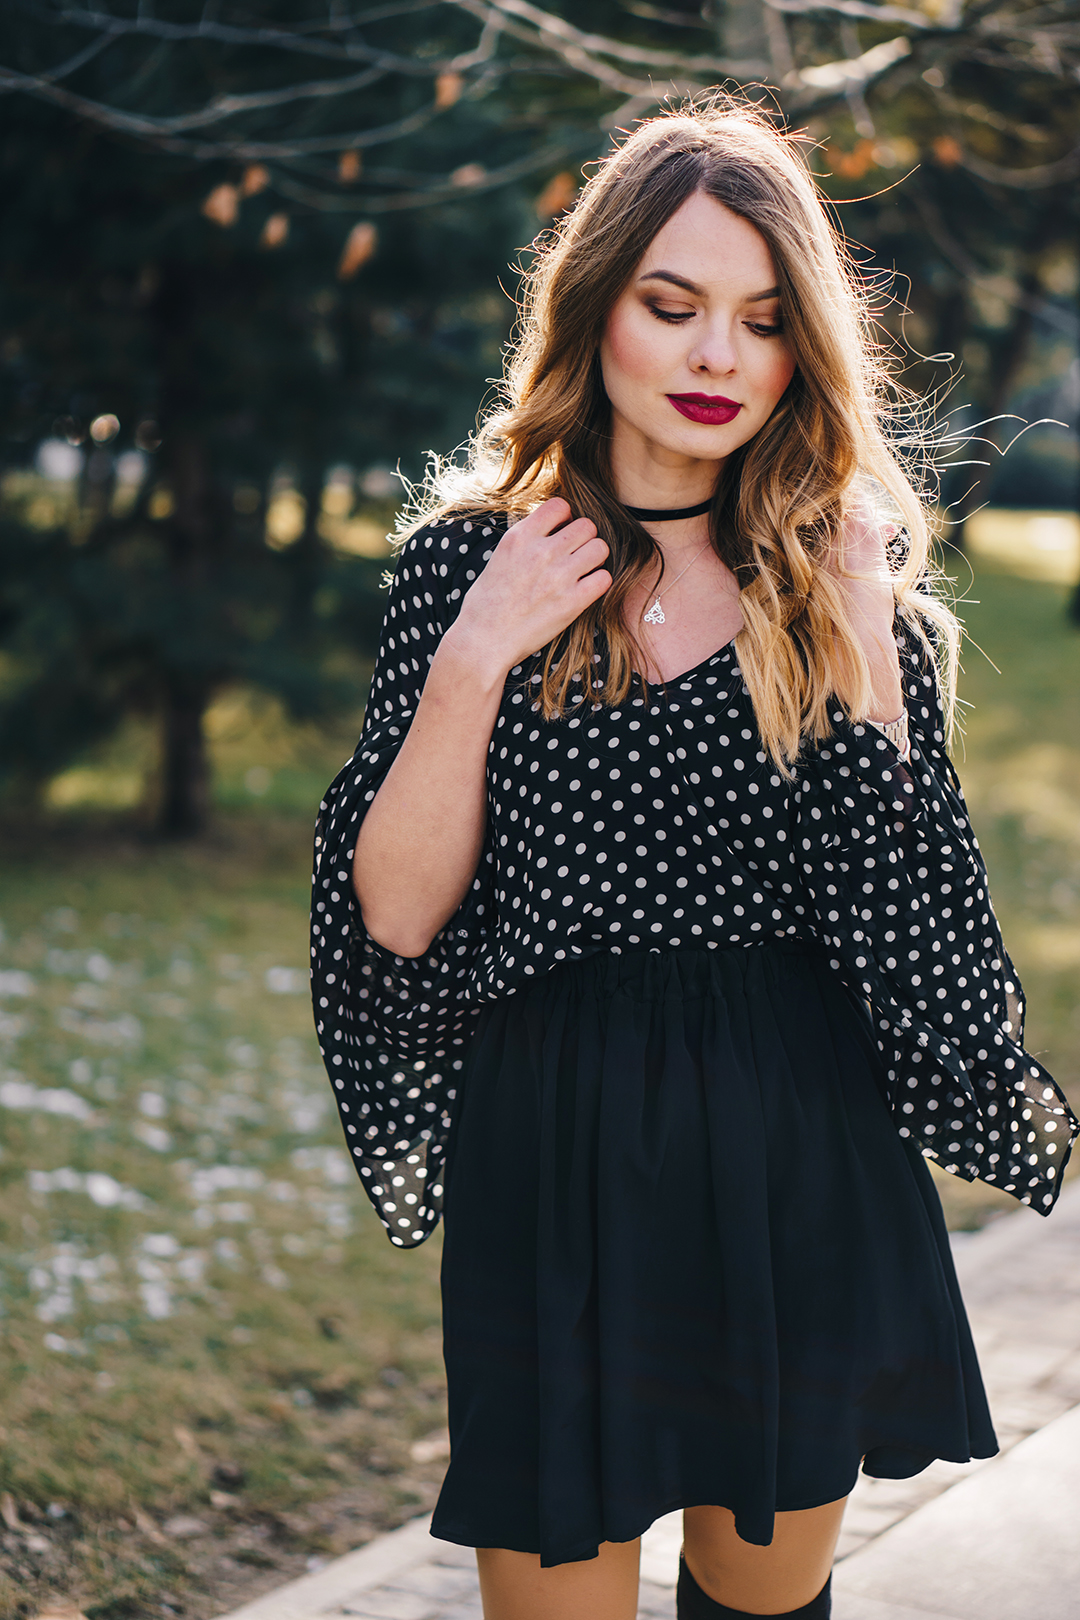 polka-dots-bell-sleeves-blouse-otk-boots-winter-outfit-1